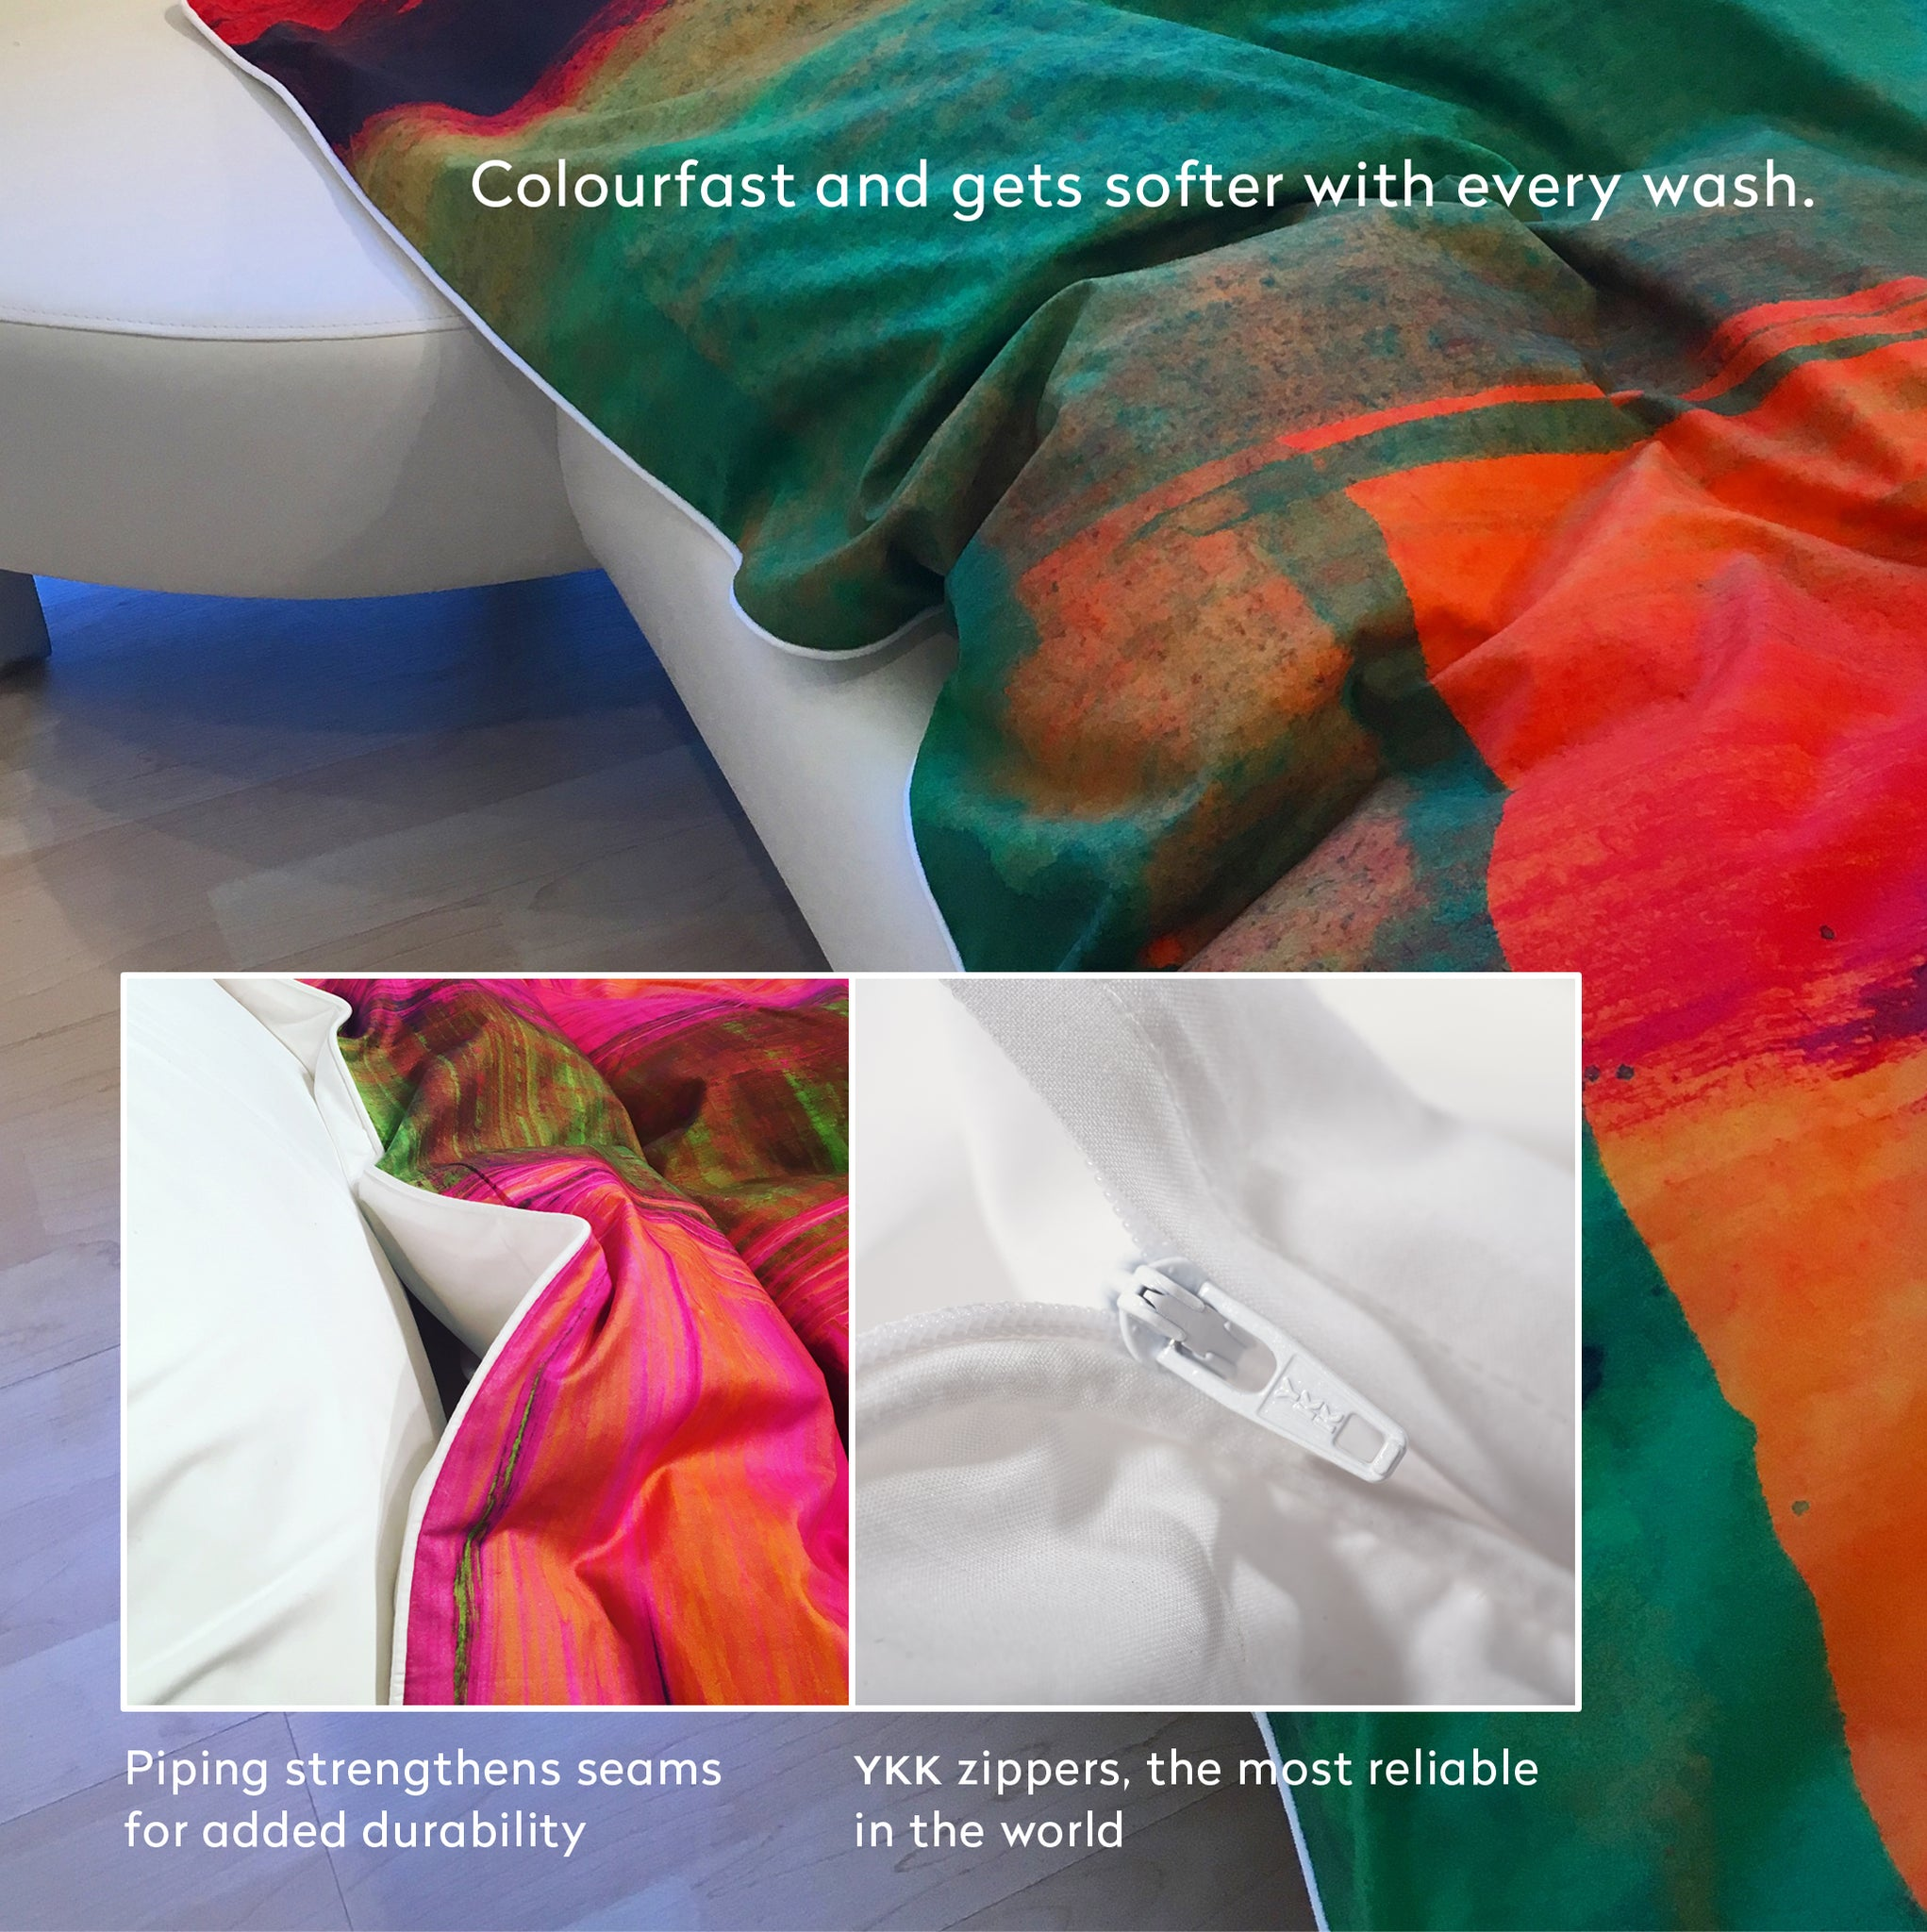 ZayZay duvet cover details - piping, YKK zipper and colourfast, softer with each wash